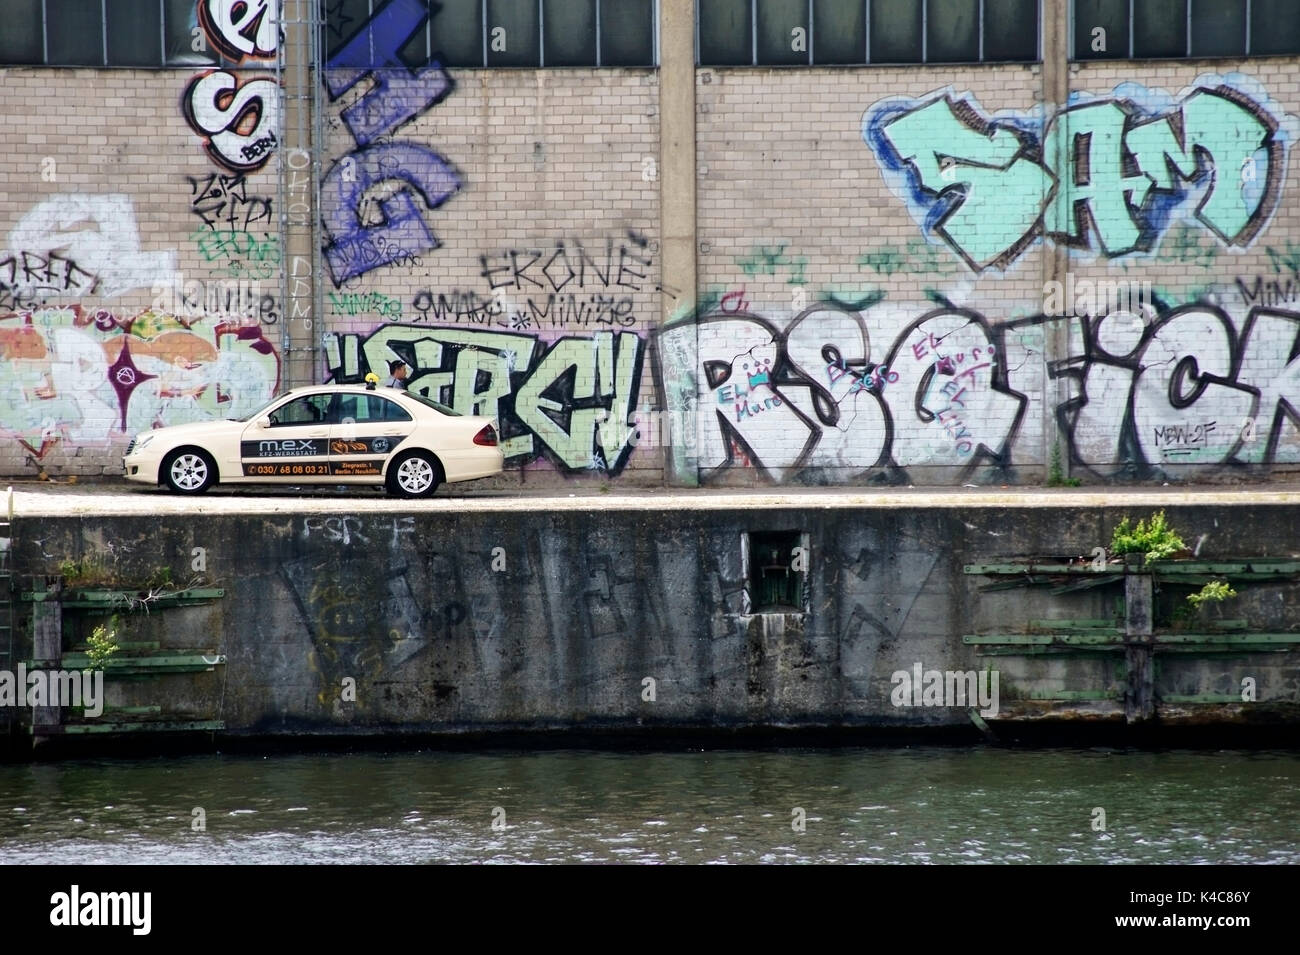 Taxi In Front Of Brightly Painted Graffiti Wall - Stock Image